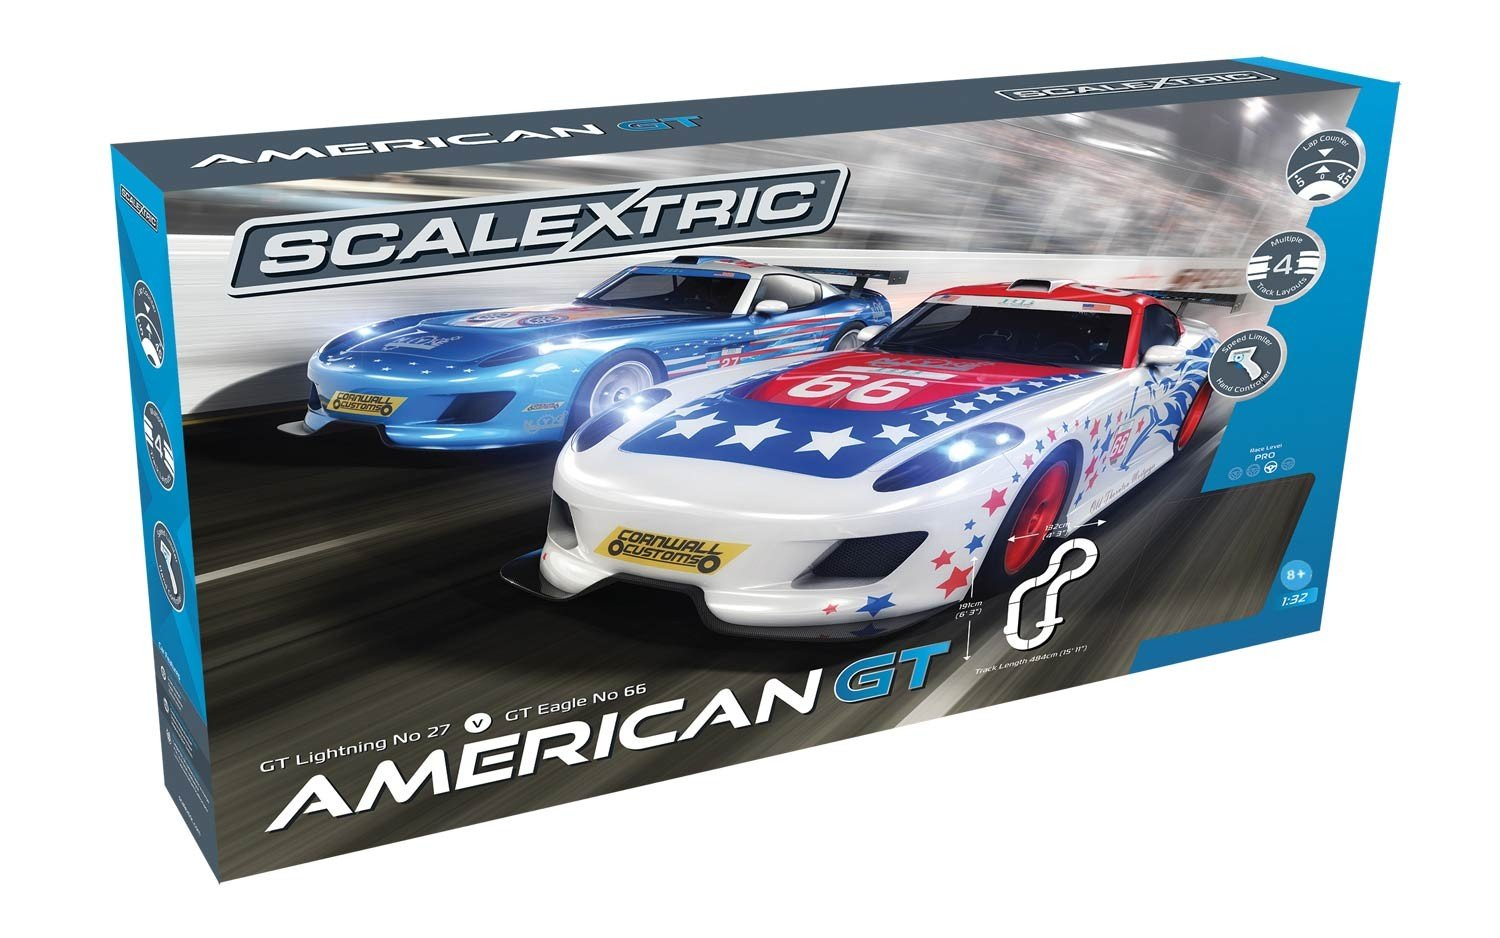 Scalextric Continental Sports Cars Set 132 Scale Wiring Kit To Replace The Old Wire In Your Toys Games